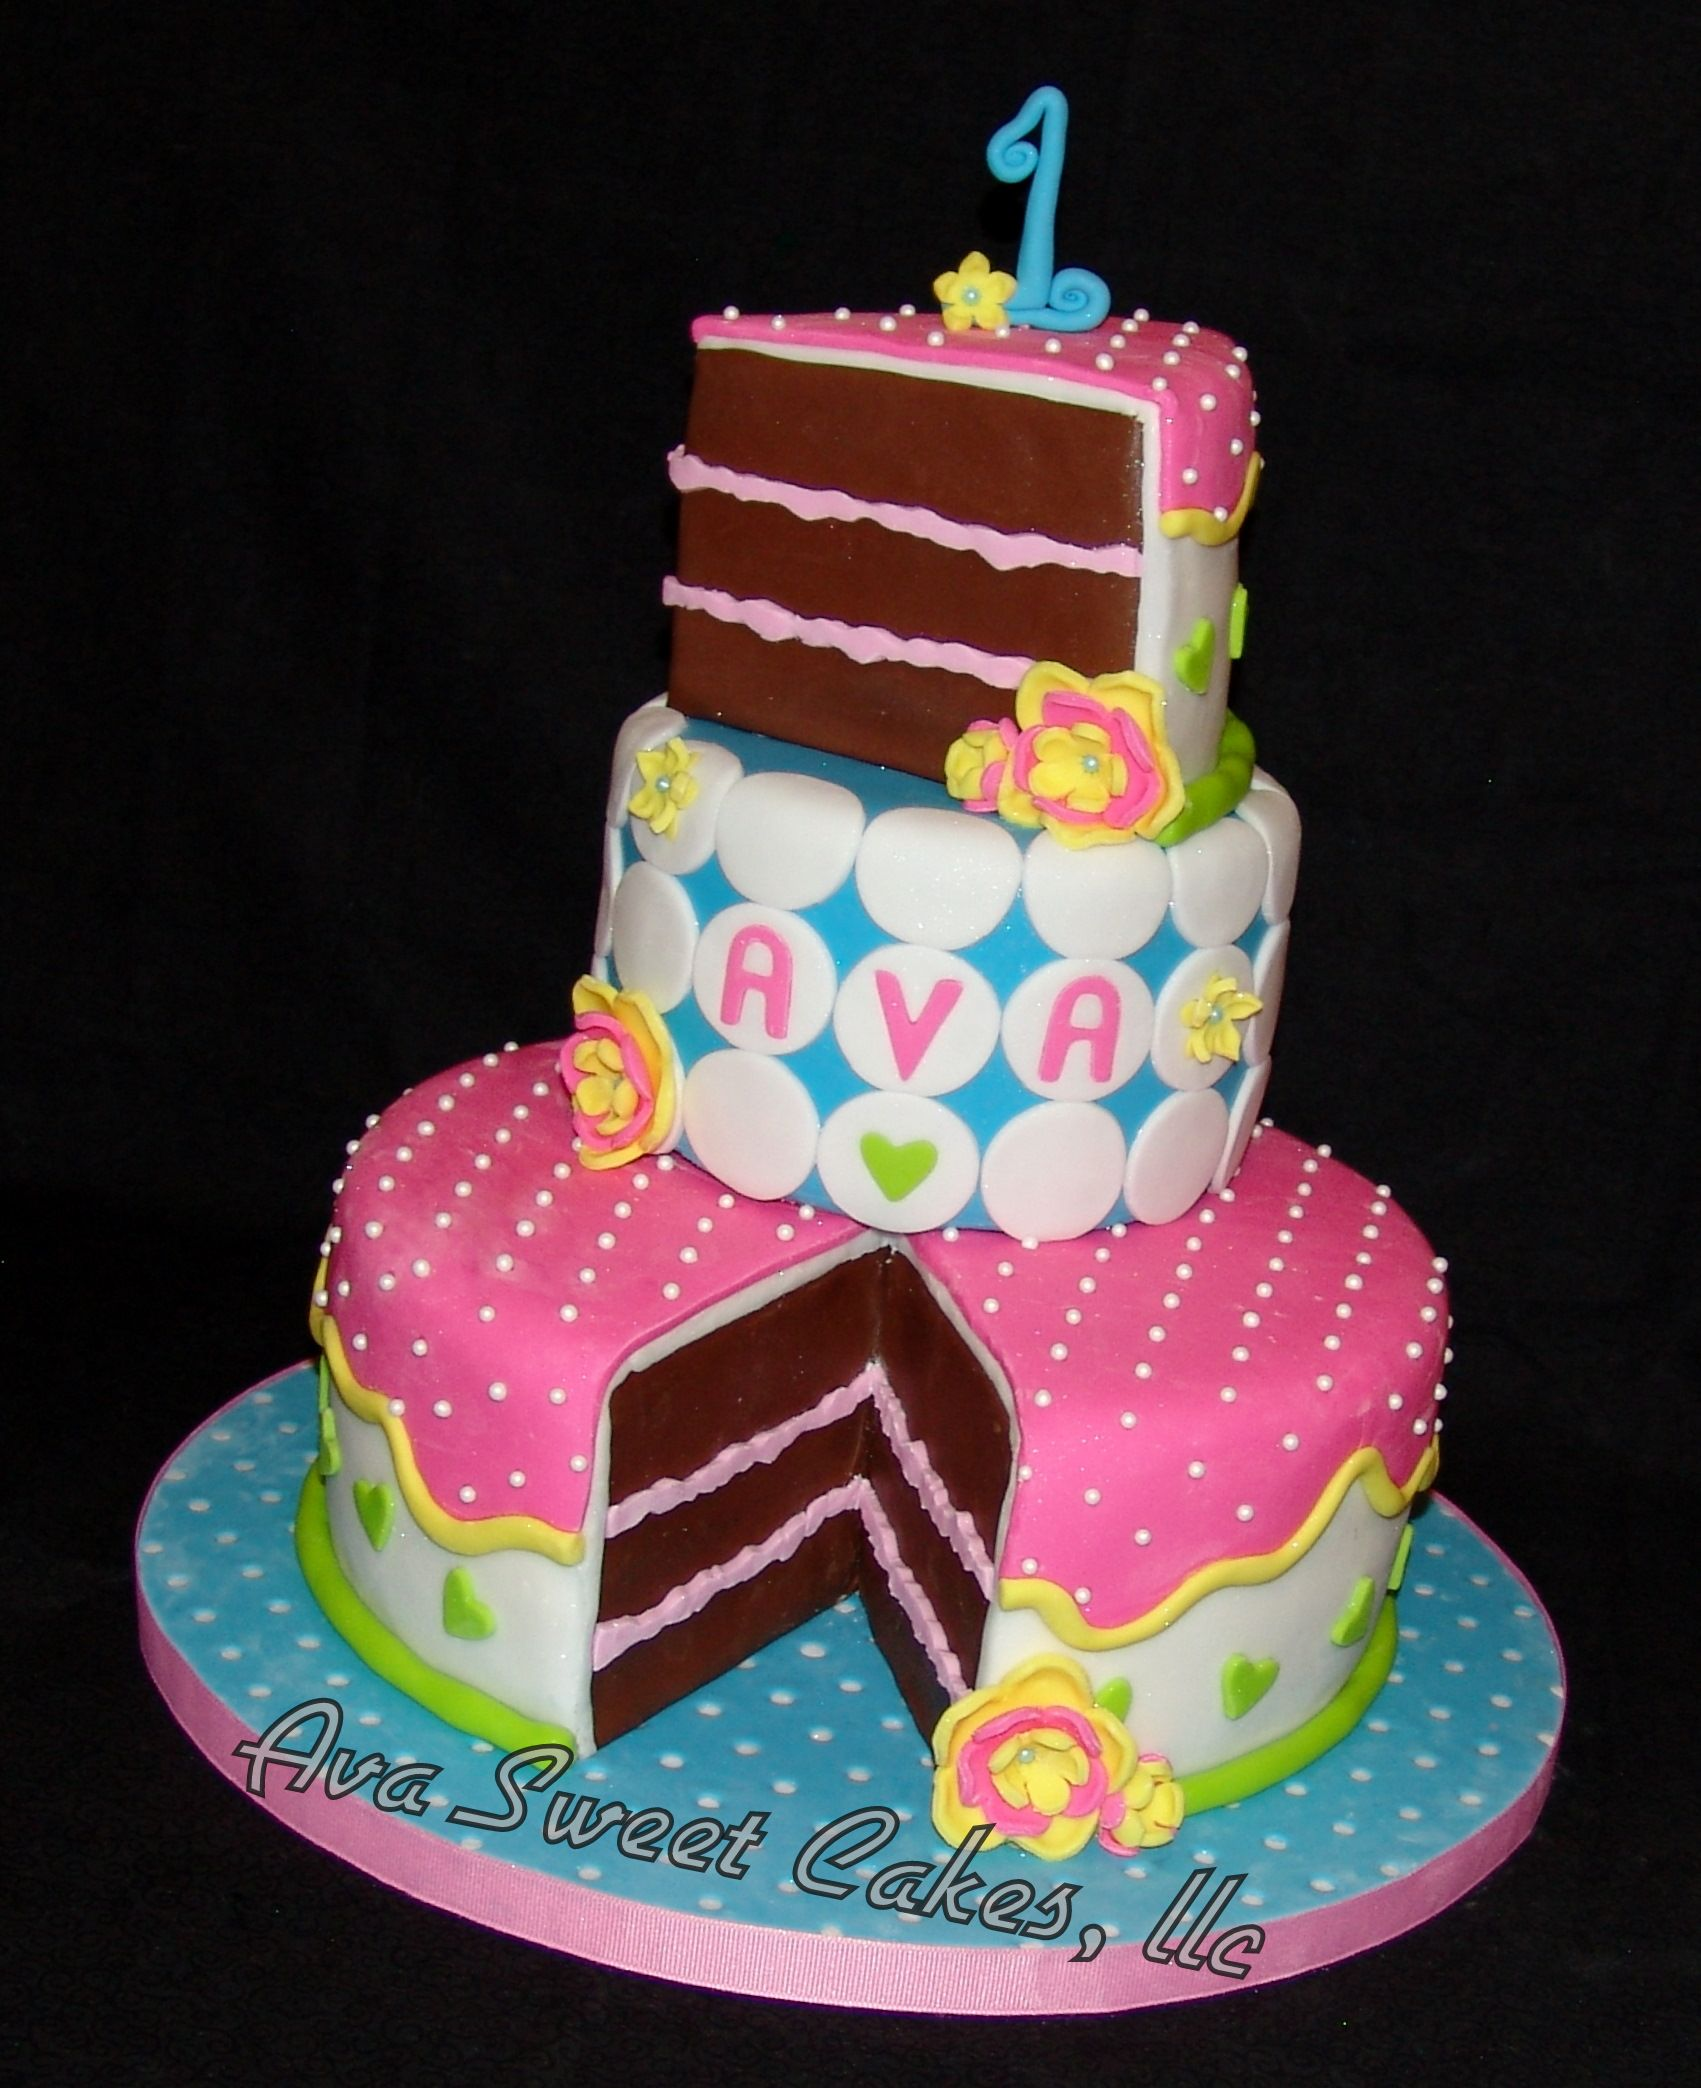 Happy Birthday Cakes For Girls: I Made This Cake For My Daughters 1st